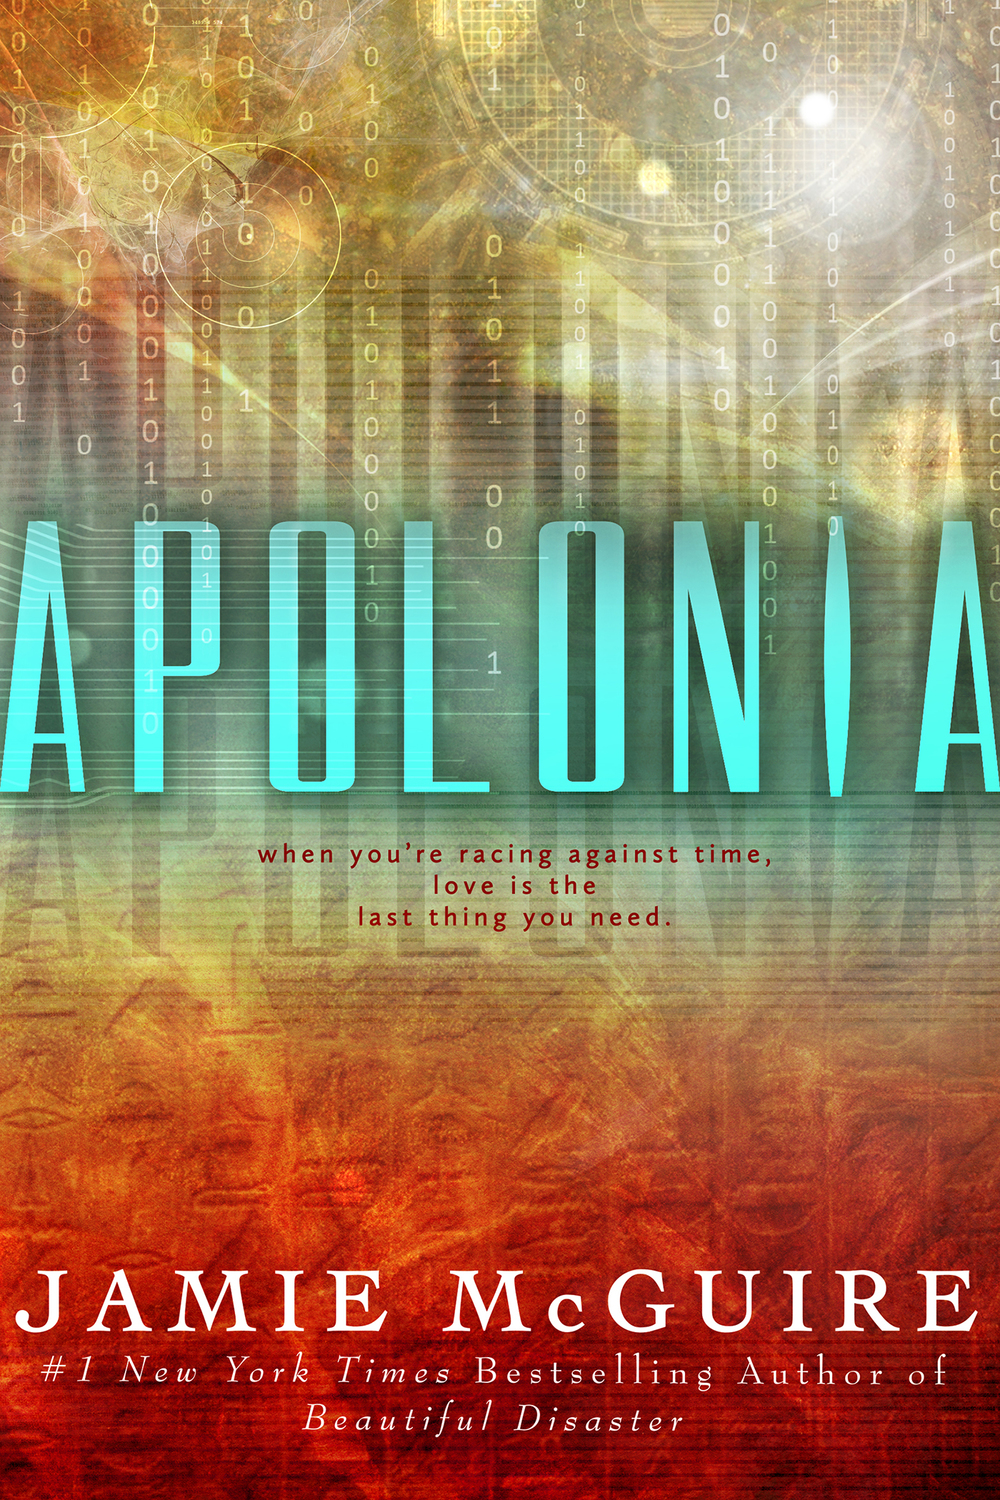 apolonia-front-cover.jpg